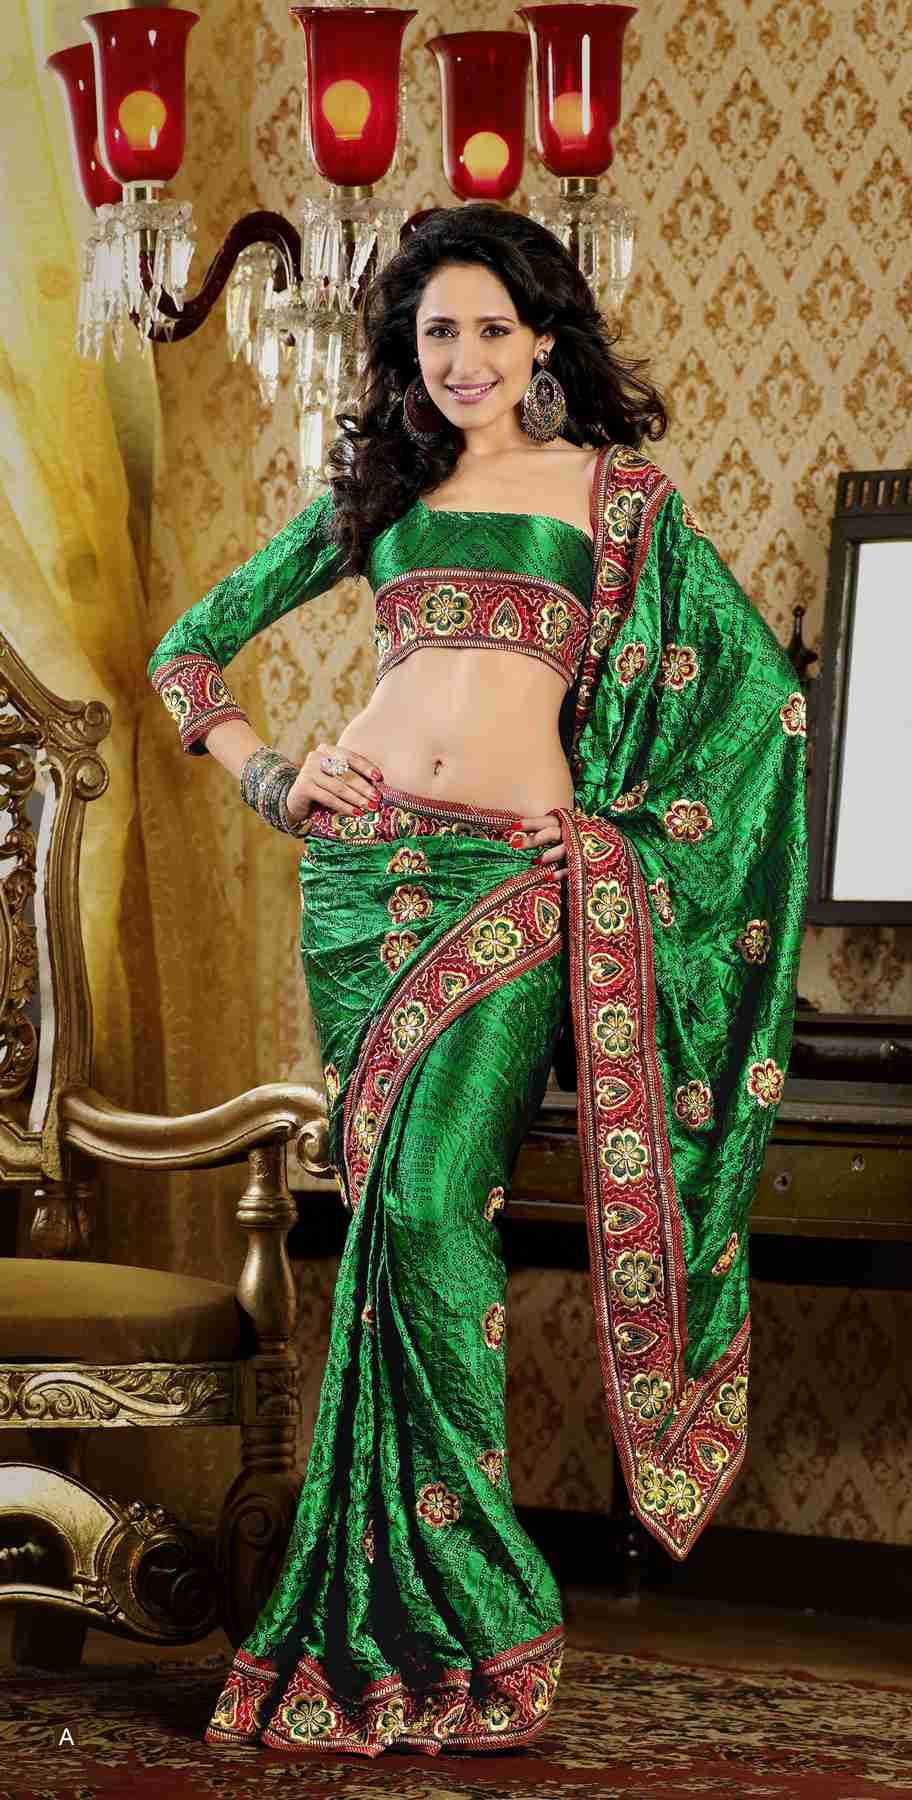 Daya Bottle Green Faux Crepe Luxury Party Wear Sari saree